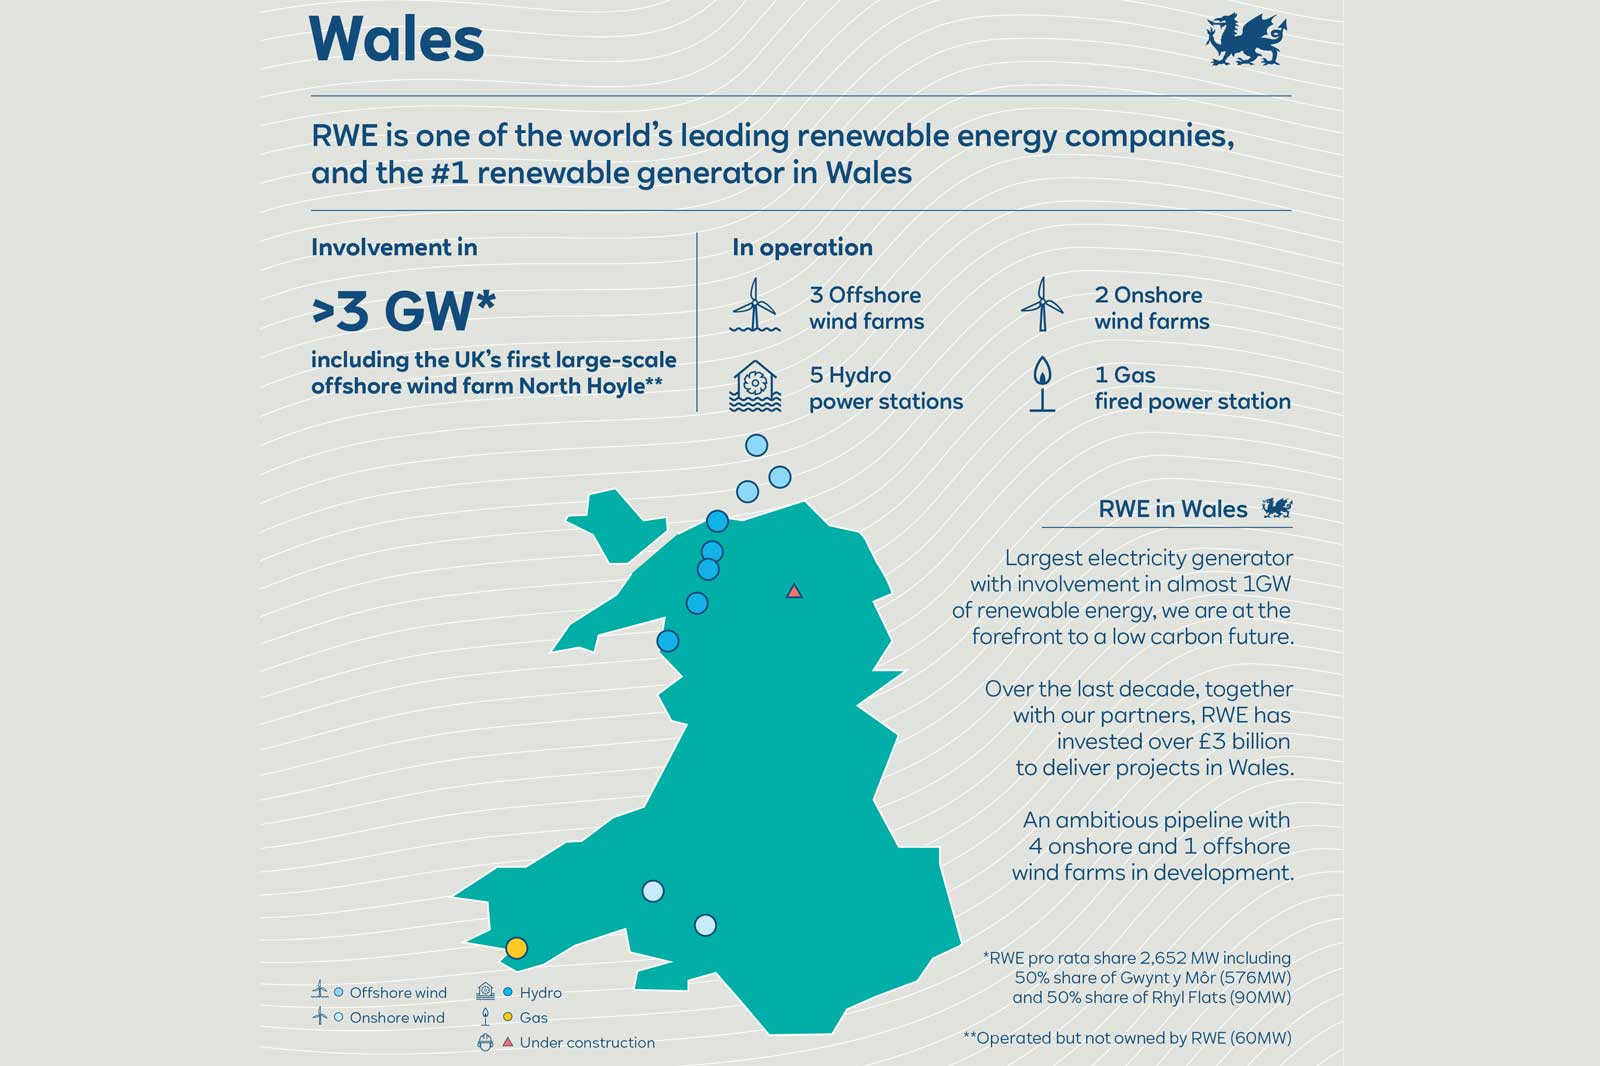 TIC01-wales-infographic-ohne-hoehe